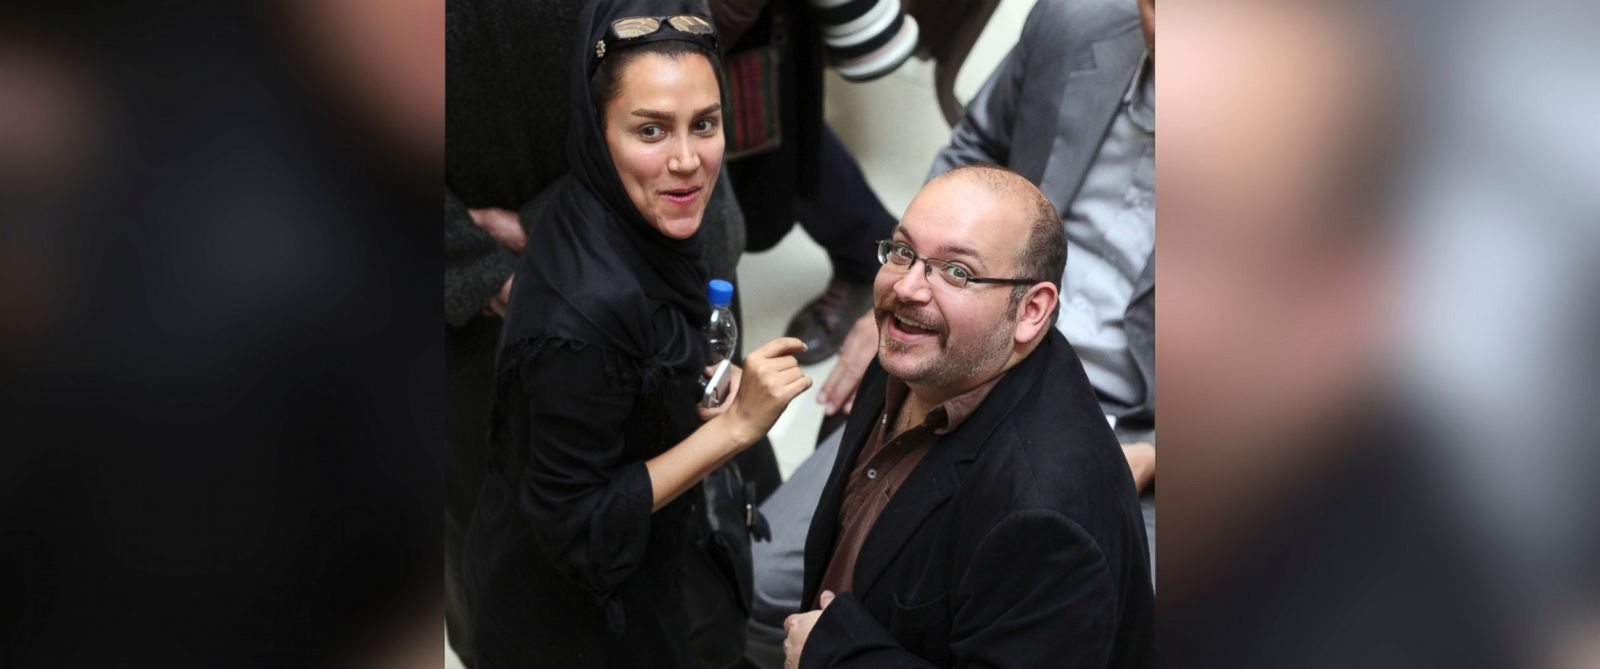 PHOTO: Jason Rezaian, an Iranian-American correspondent for the Washington Post, and his wife Yeganeh Salehi, an Iranian correspondent for the Abu Dhabi-based daily newspaper, The National, in Tehran, Iran, April 11, 2013.